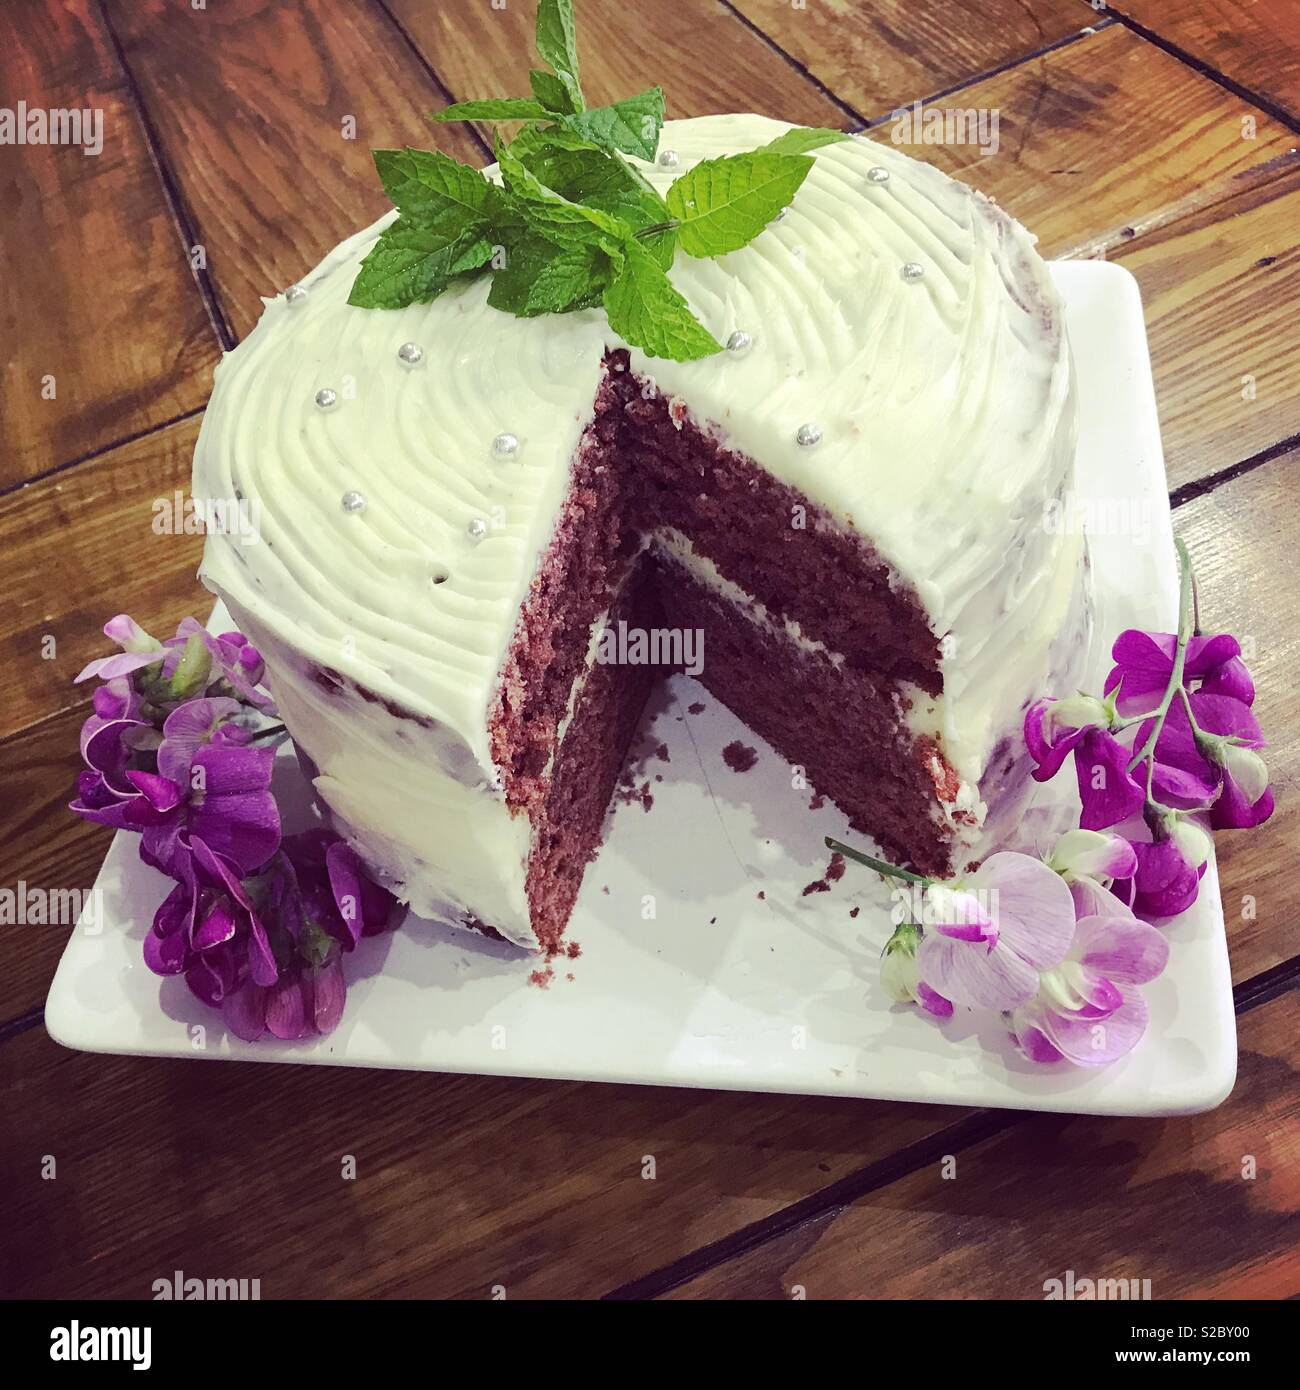 Beautiful cake with floral decoration - Stock Image